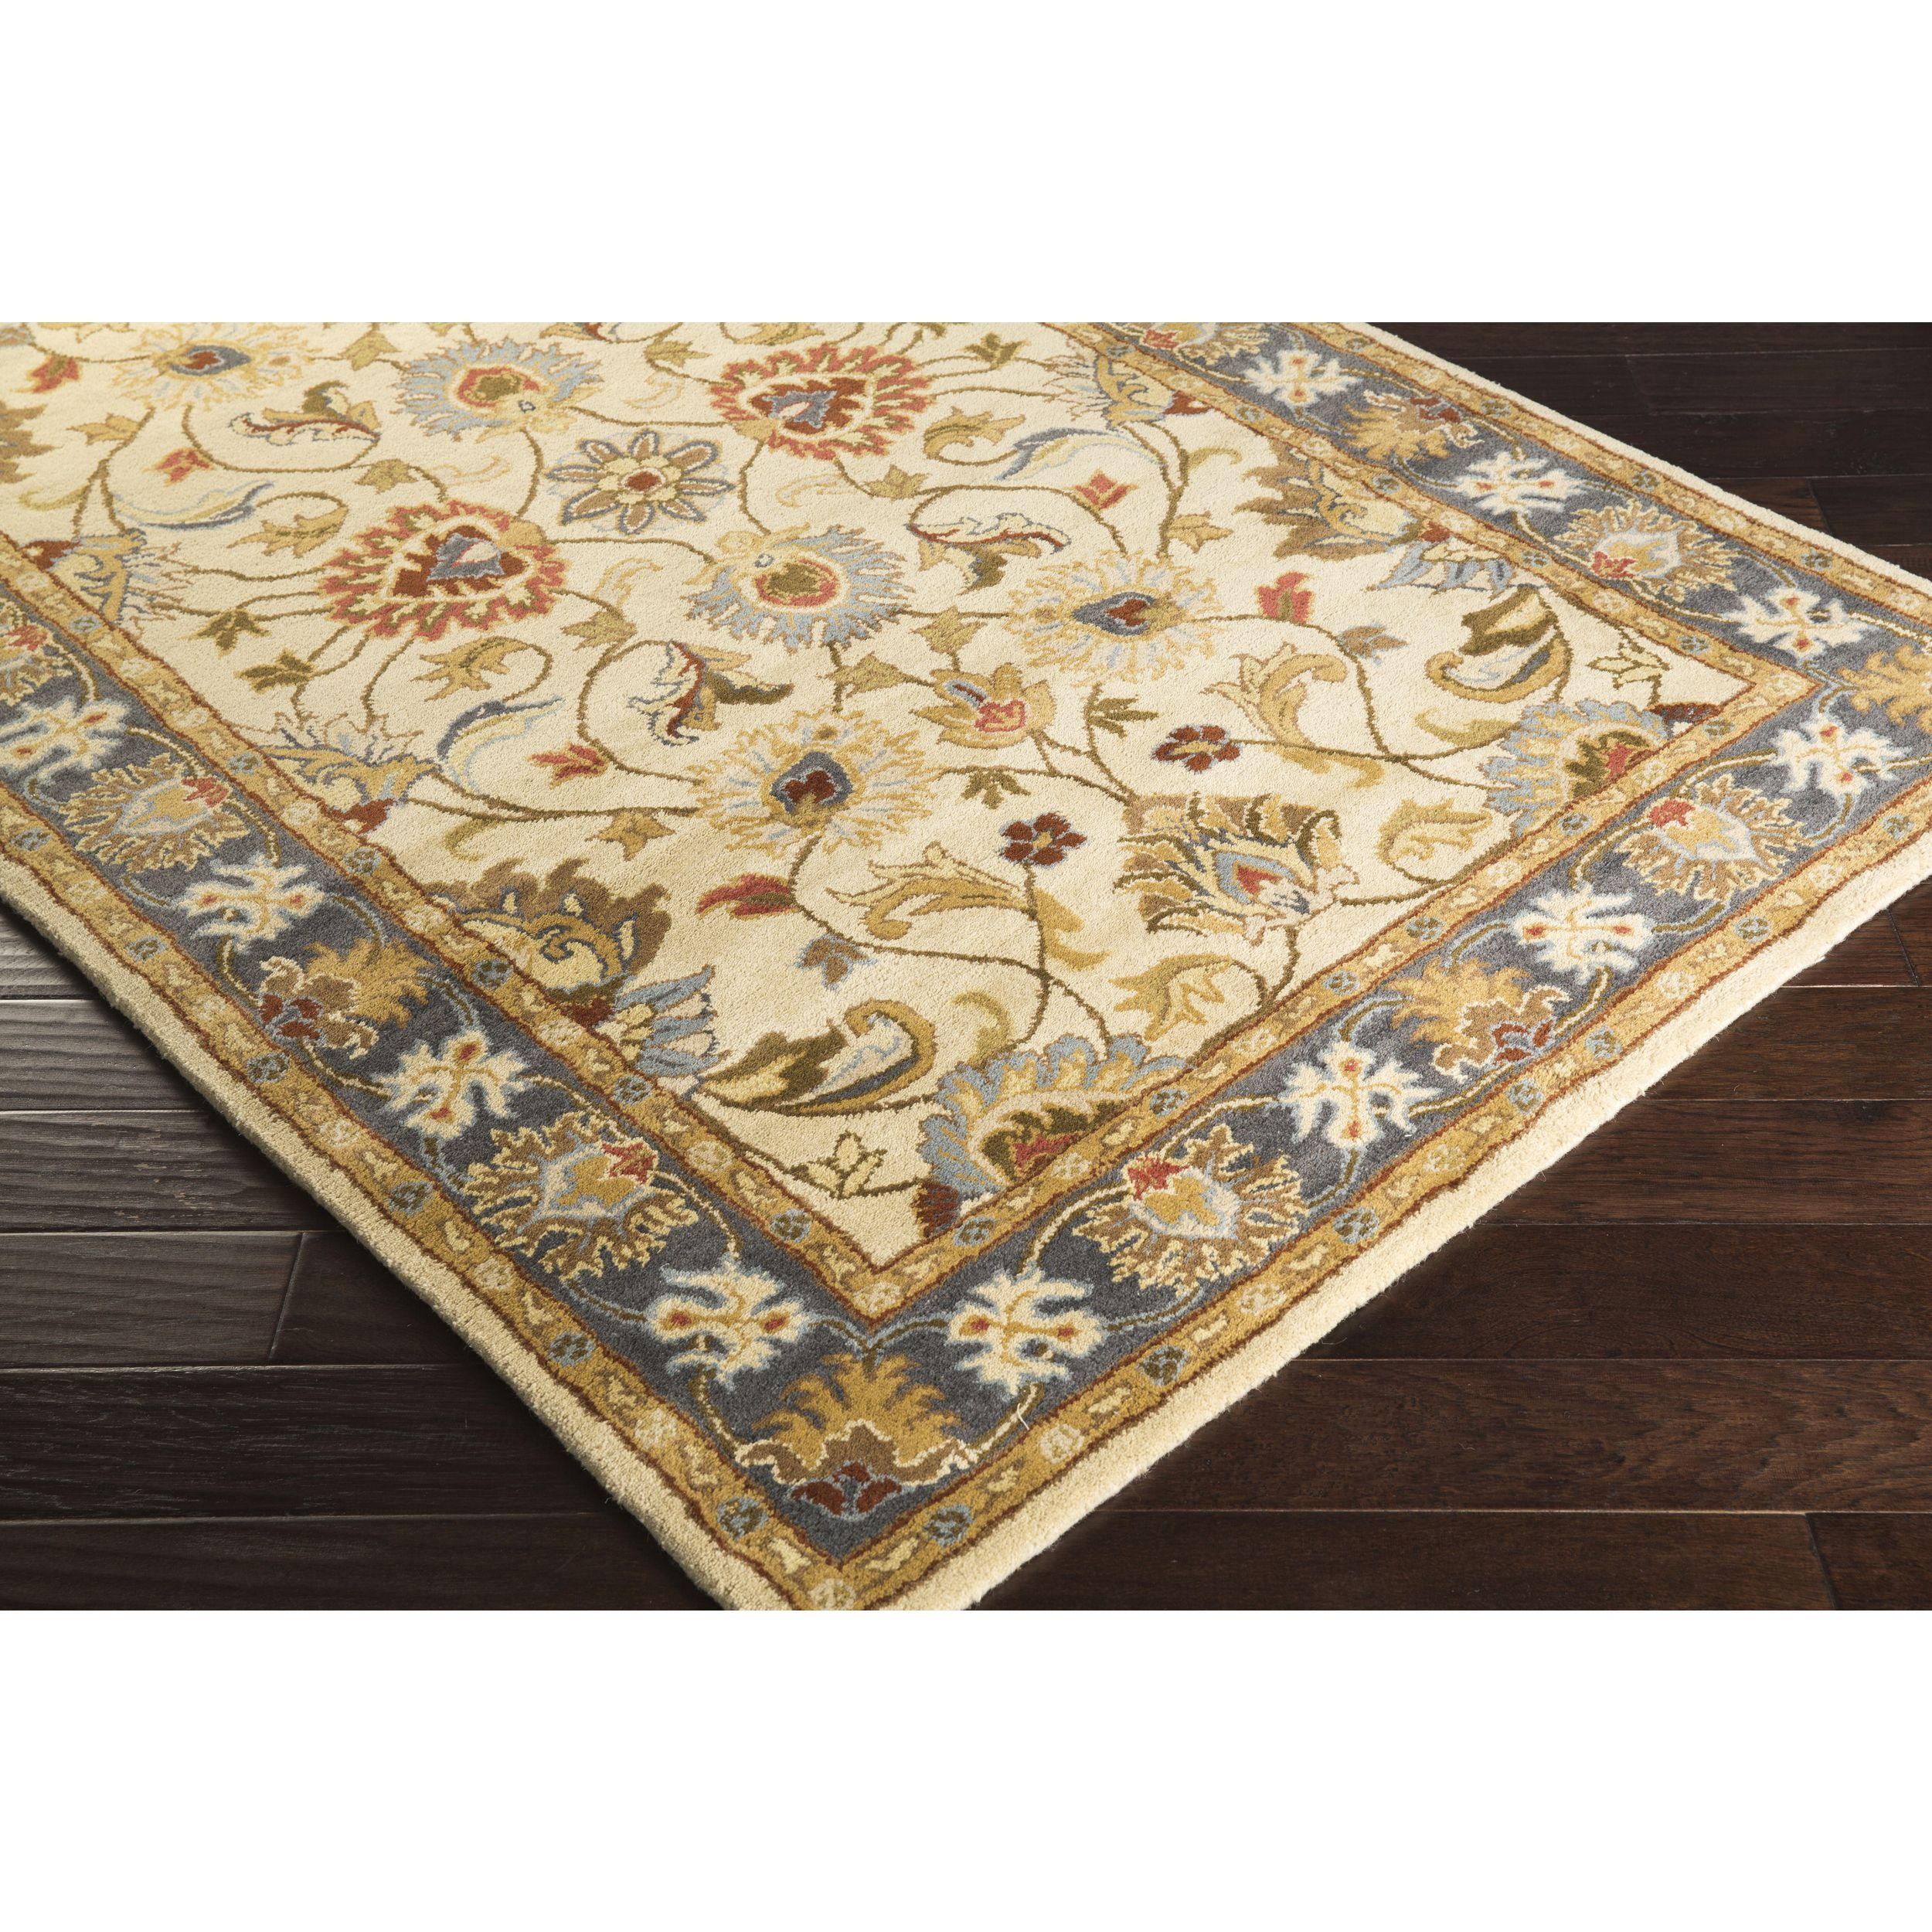 Bring Luxury To Your Home With This Traditional Area Rug